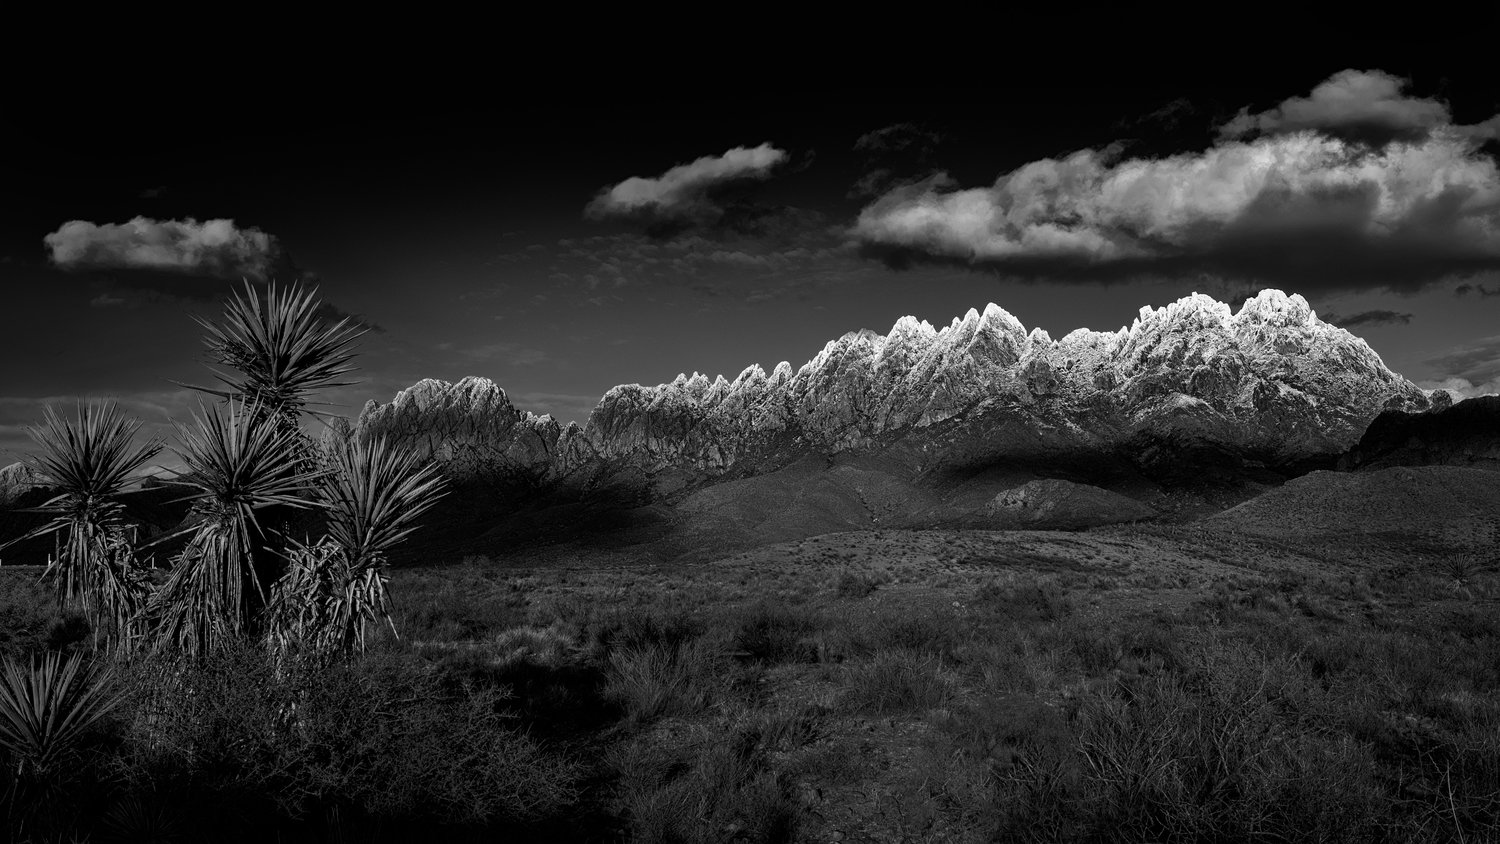 On a snowy, icy Saturday, I headed out on Dripping Springs Road to one of my favorite spots and took a photograph of the snow-capped Organs. I shot and processed the file in color, then decided to look at a black and white conversion.